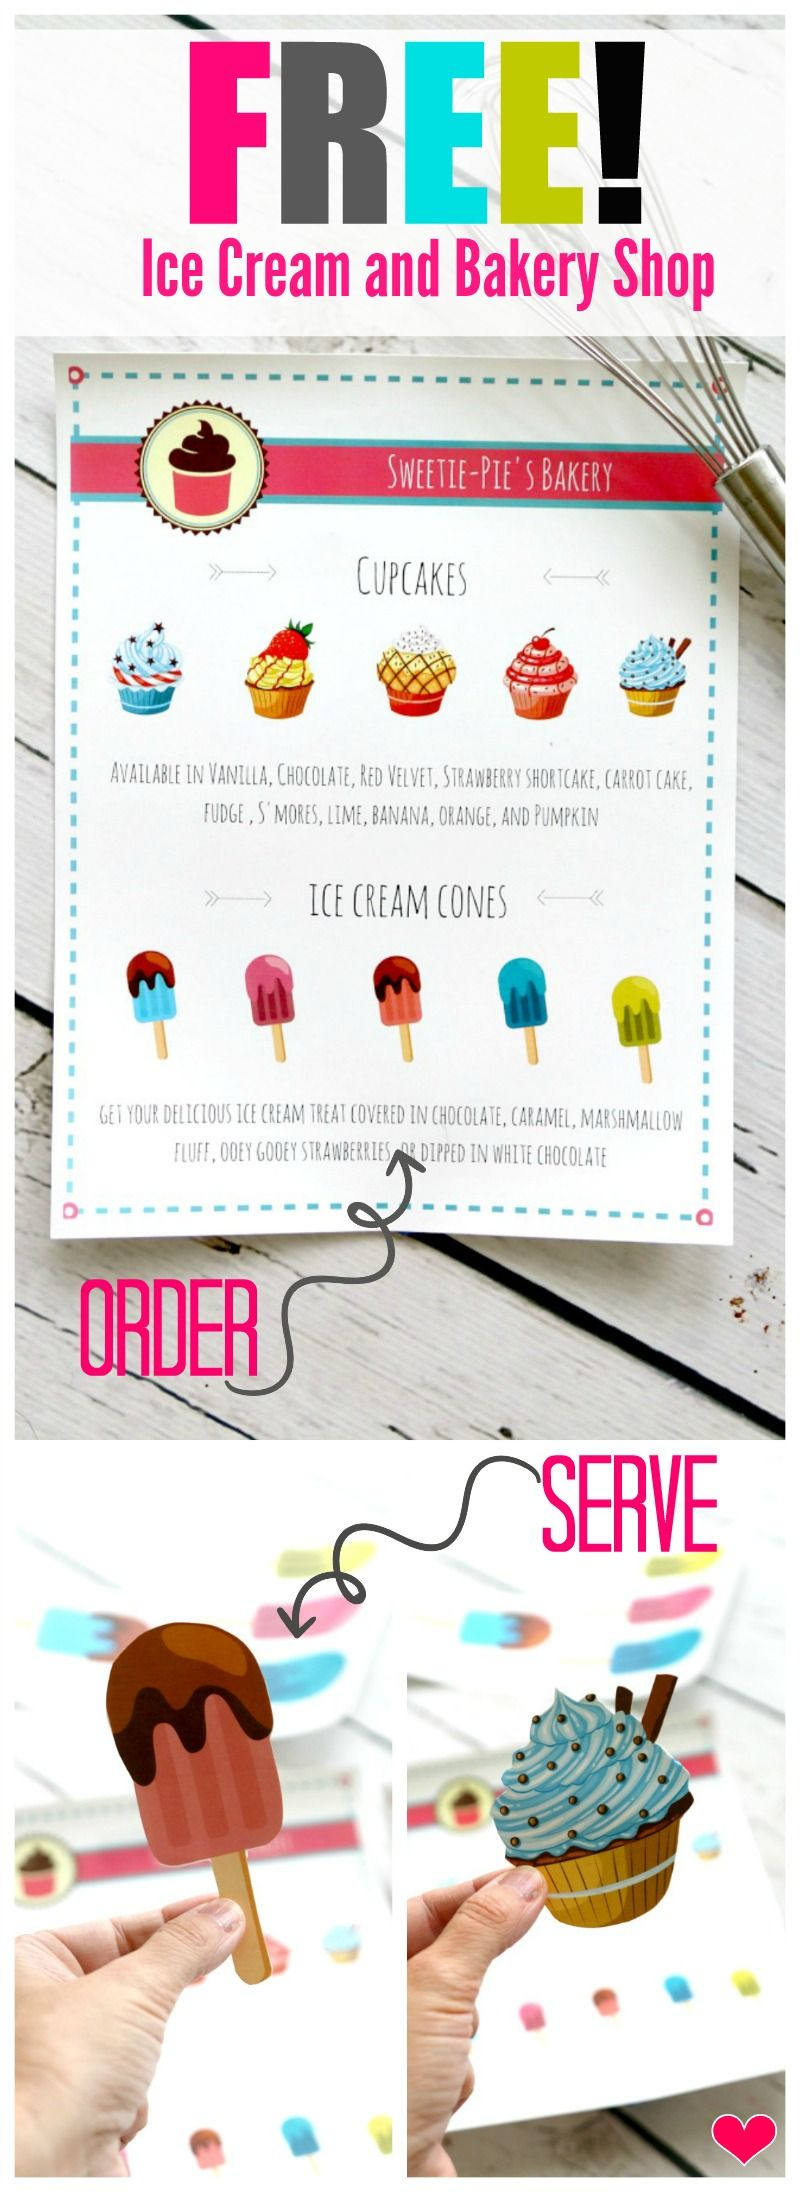 Free Bakery Ice Cream Shop Menu for kids plus extra sheets